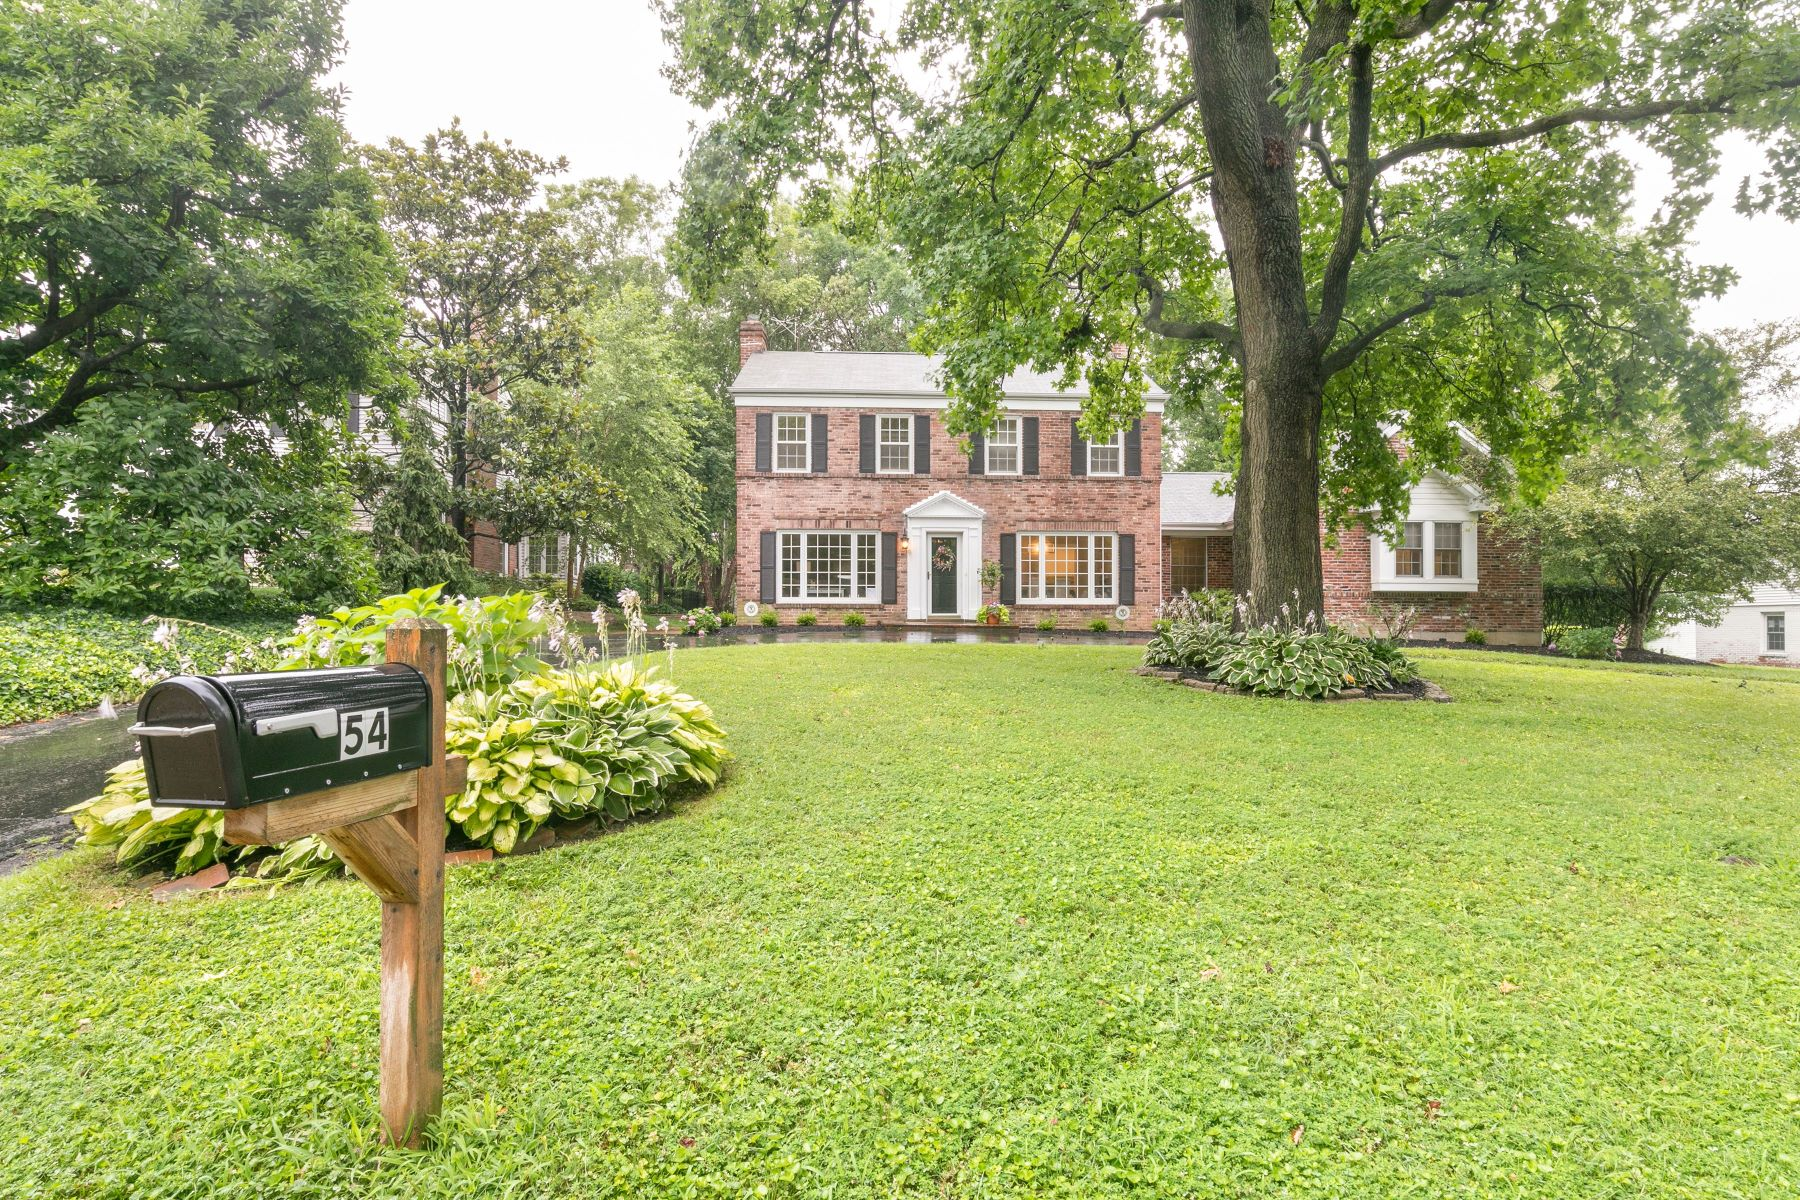 Property for Sale at Chevy Chase pastoral setting & modern elegance converge 54 Highgate Road Olivette, Missouri 63132 United States